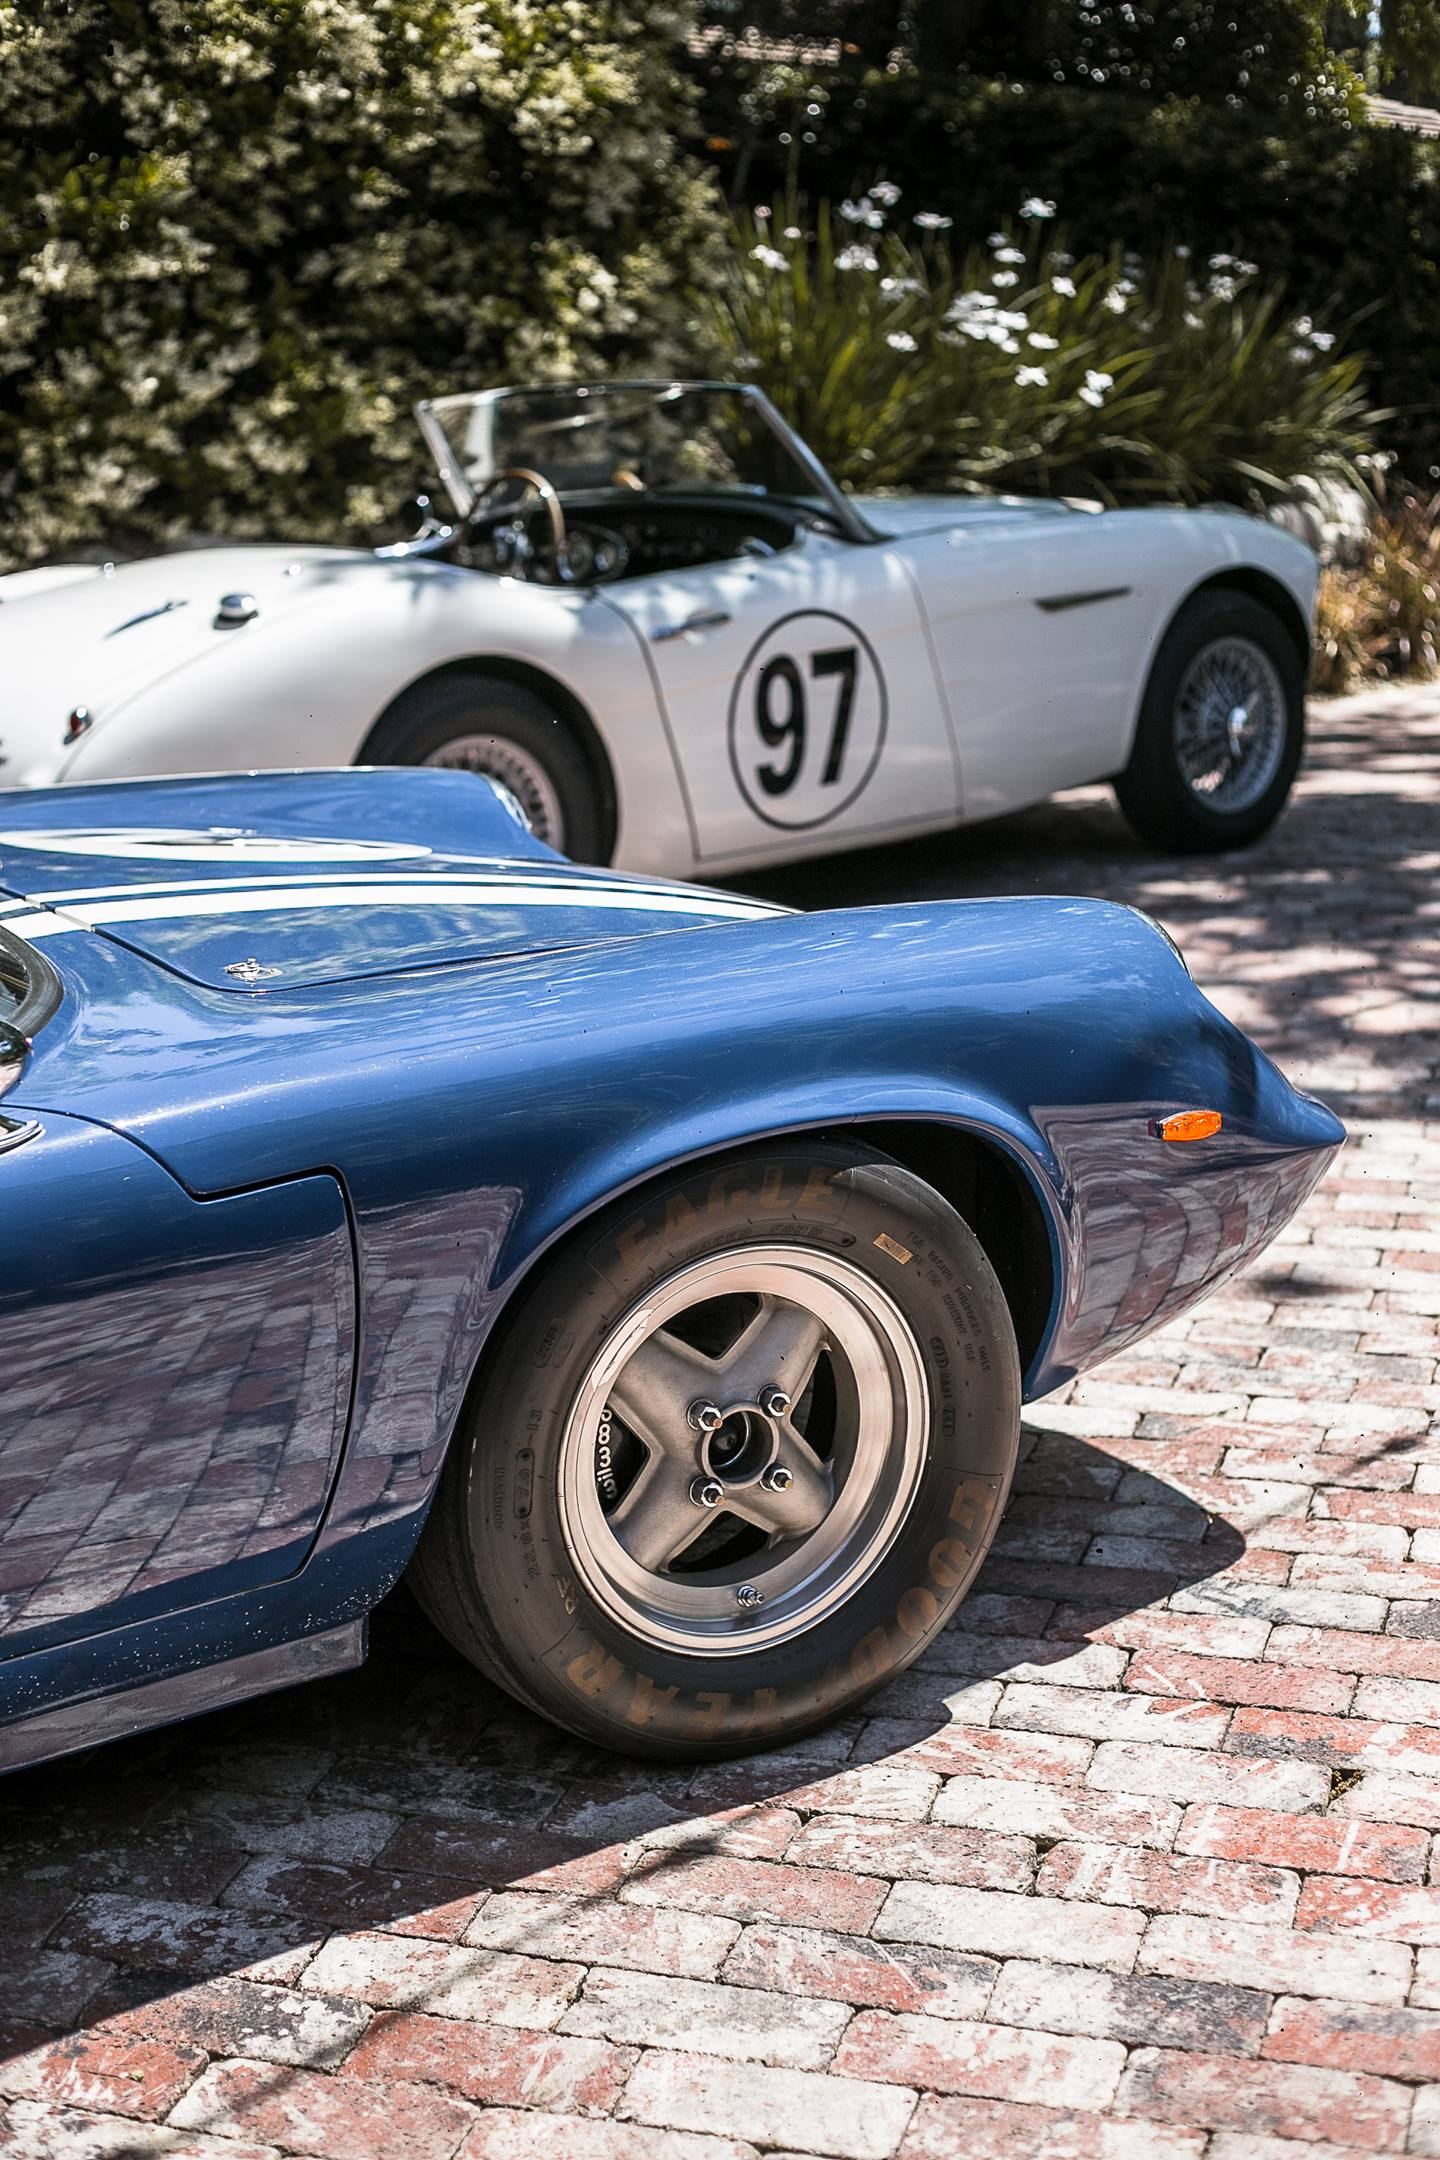 A 1970 Lotus Europa and and a 1960 Austin-Healey 3000 MkI. detail